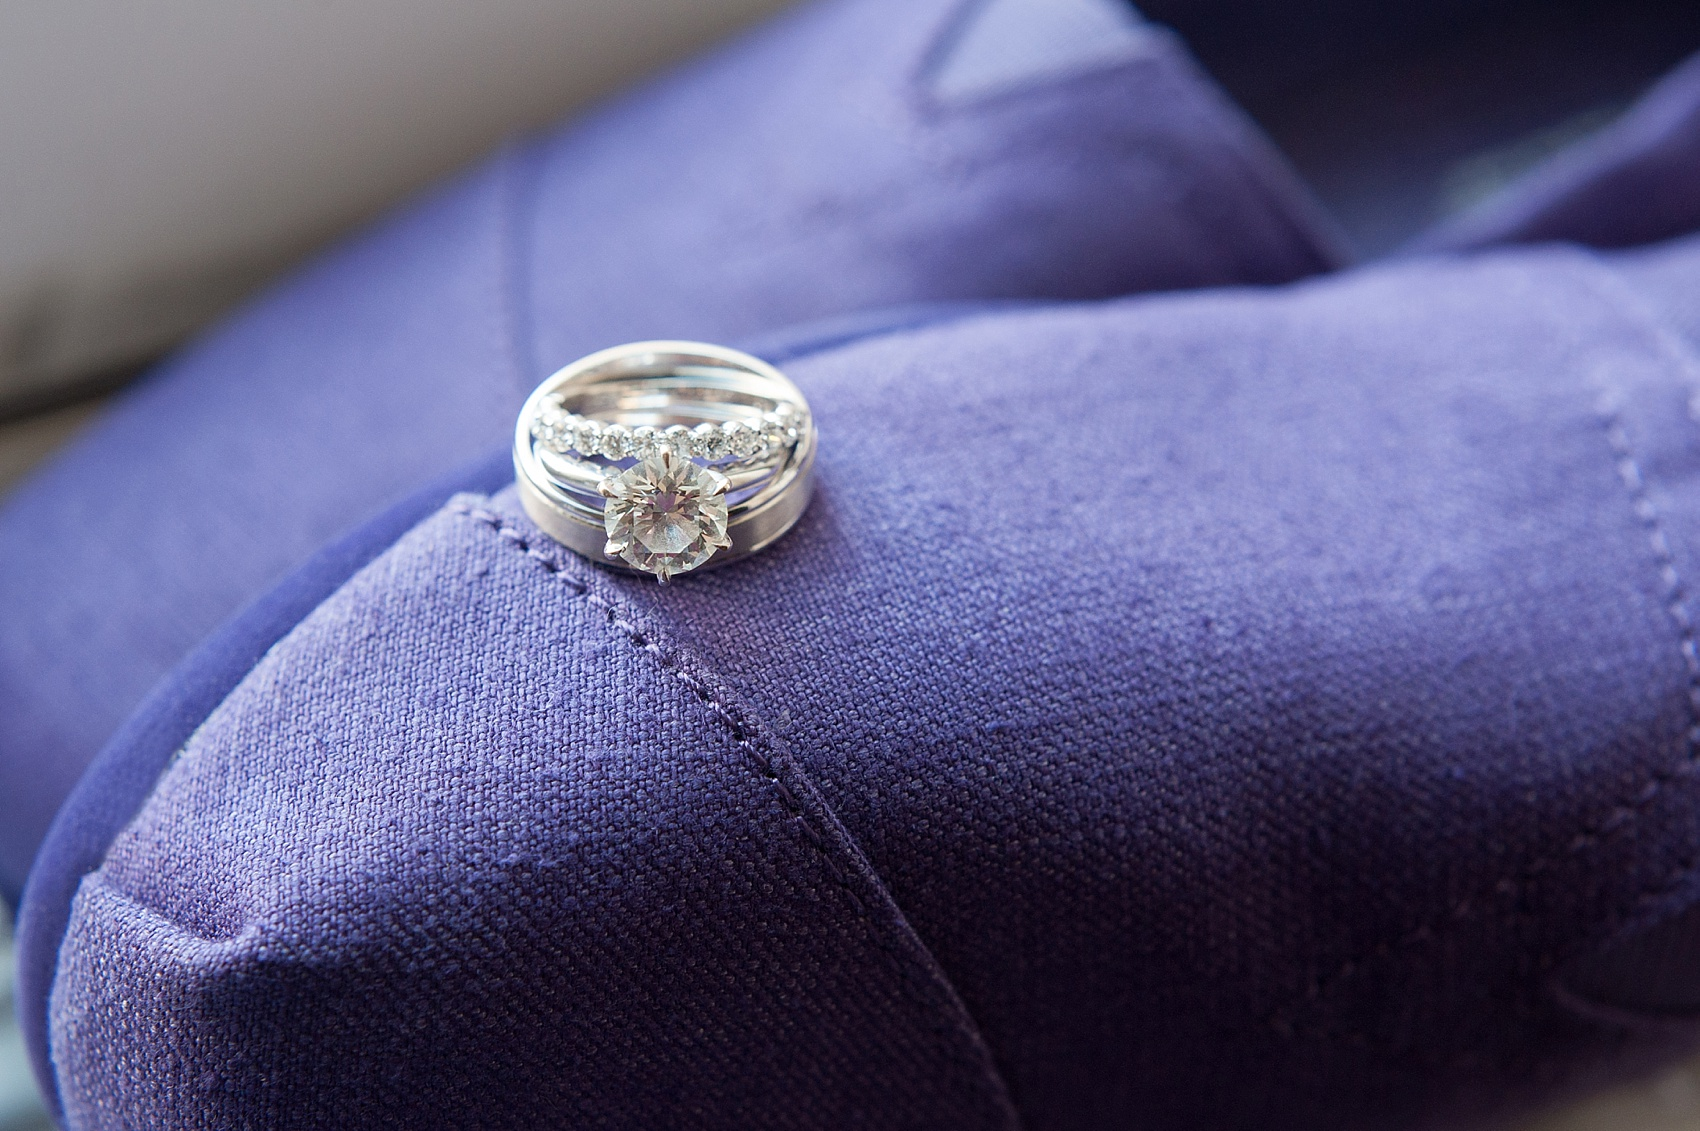 Ring photo for downtown Cincinnati, Ohio wedding at The Center. Photos by Mikkel Paige Photography.